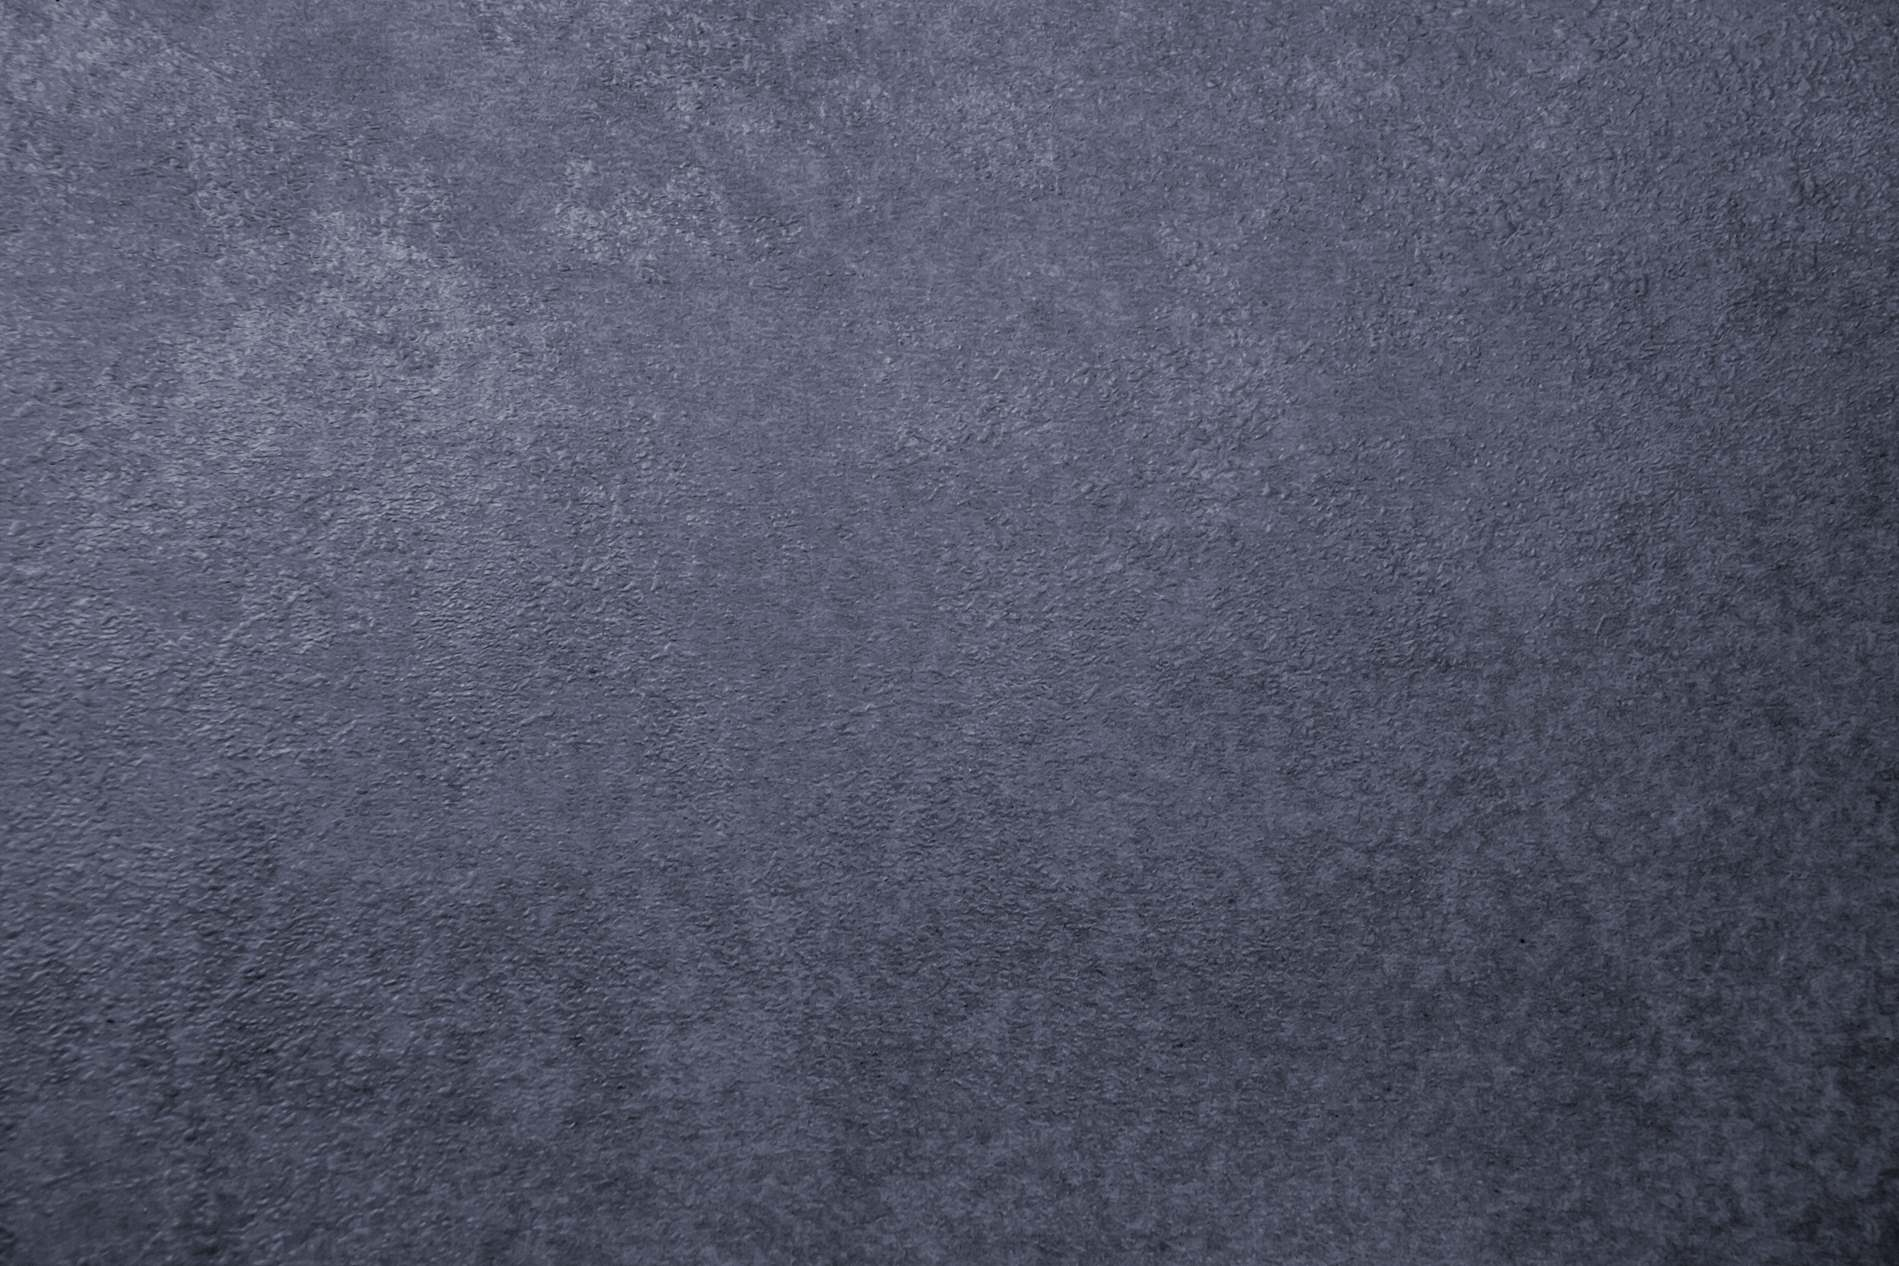 Dark Gray Wall Texture Vintage Background Photohdx